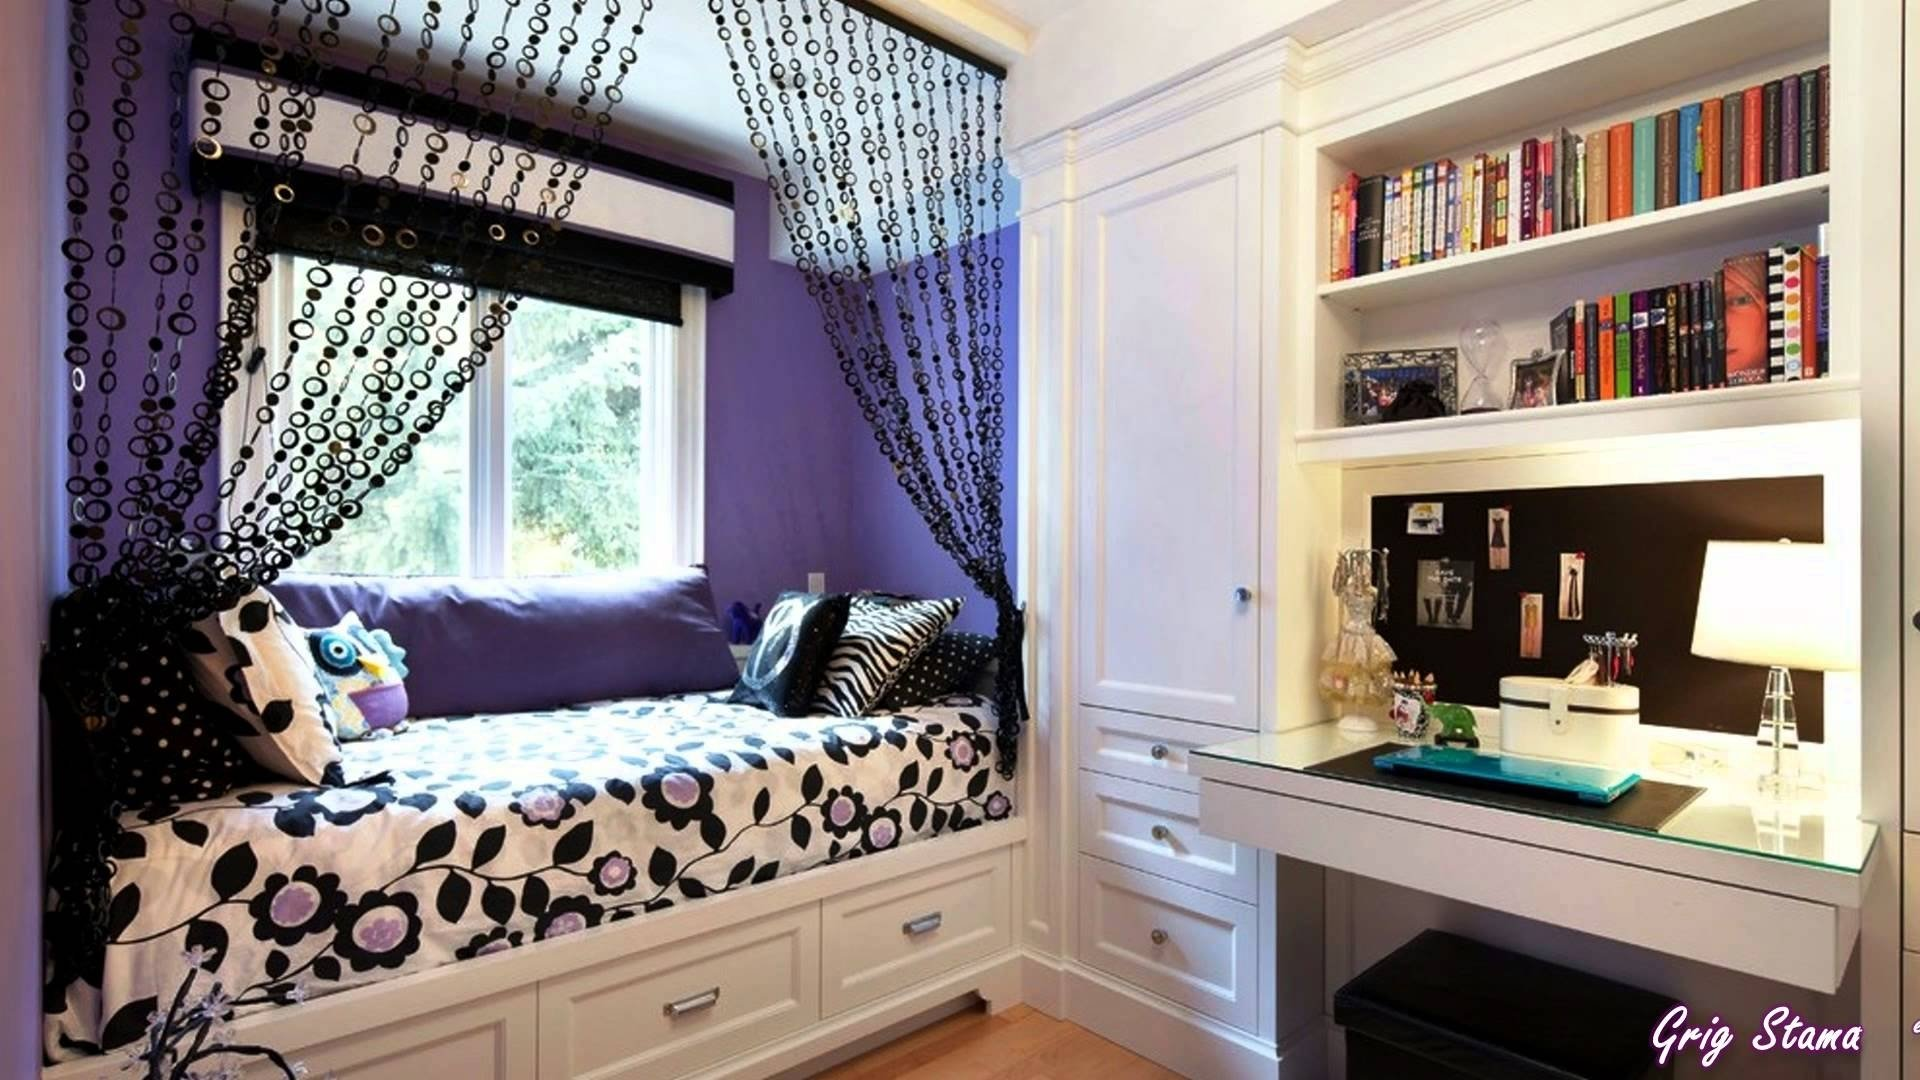 10 Nice Bedroom Decorating Ideas For Teenage Girls diy teenage bedroom decorating ideas beautiful frantic kids room 2021